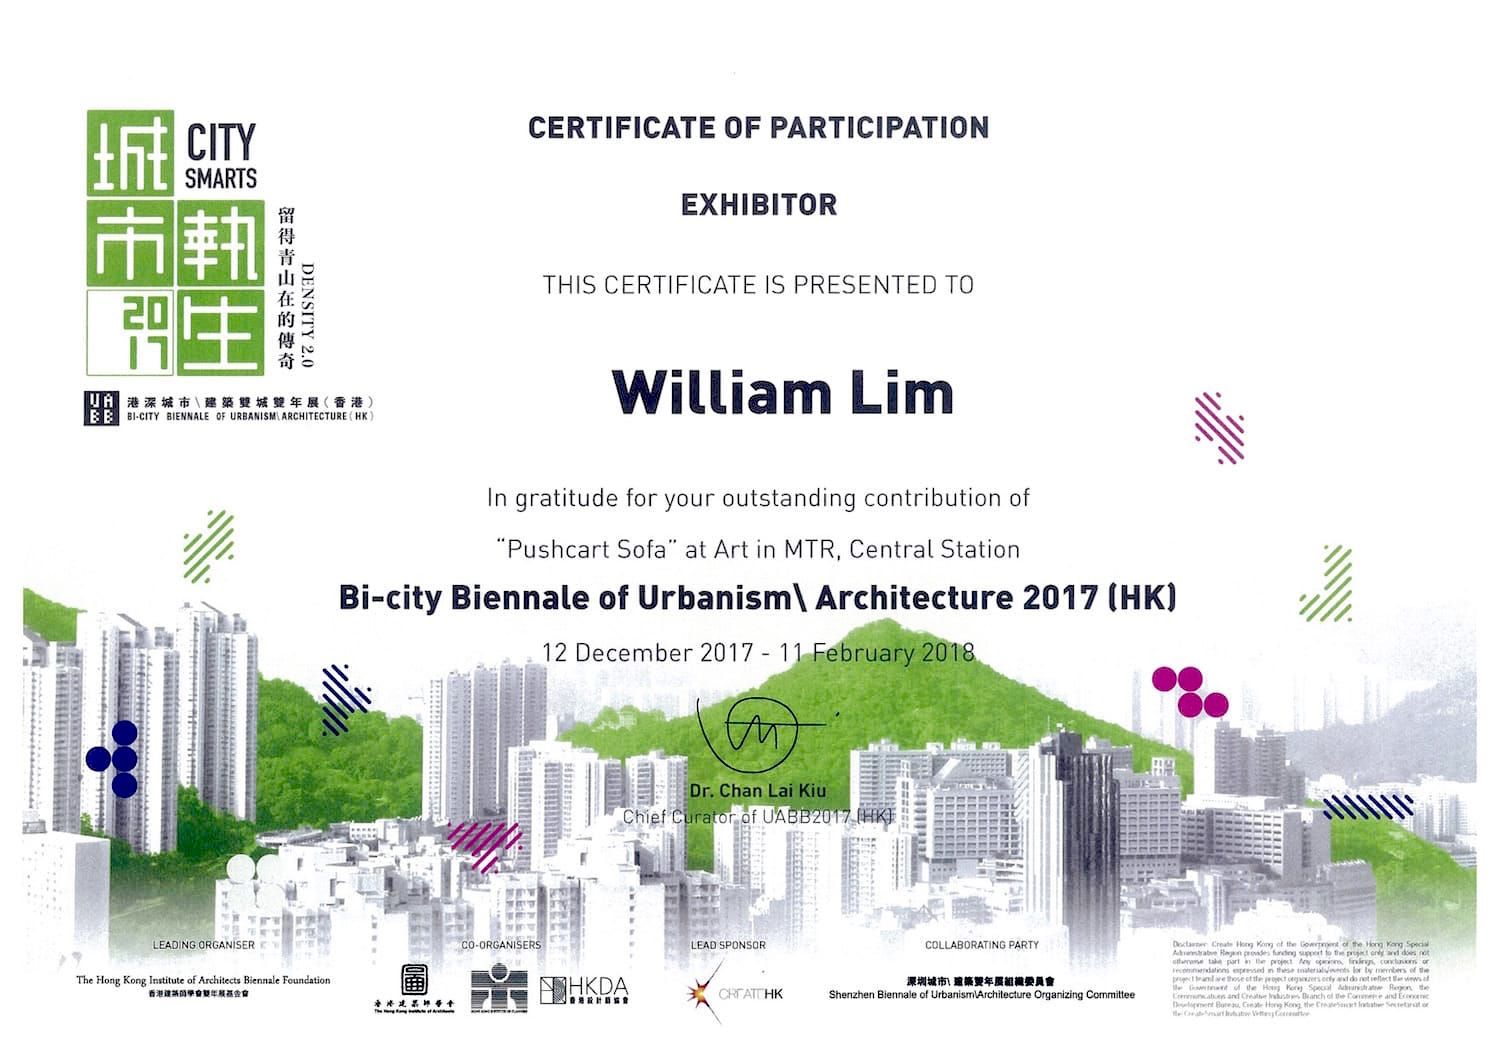 Bi-city Biennale of Urbanism Architecture 2017 (HK)_Pushcart Sofa William Lim CL3